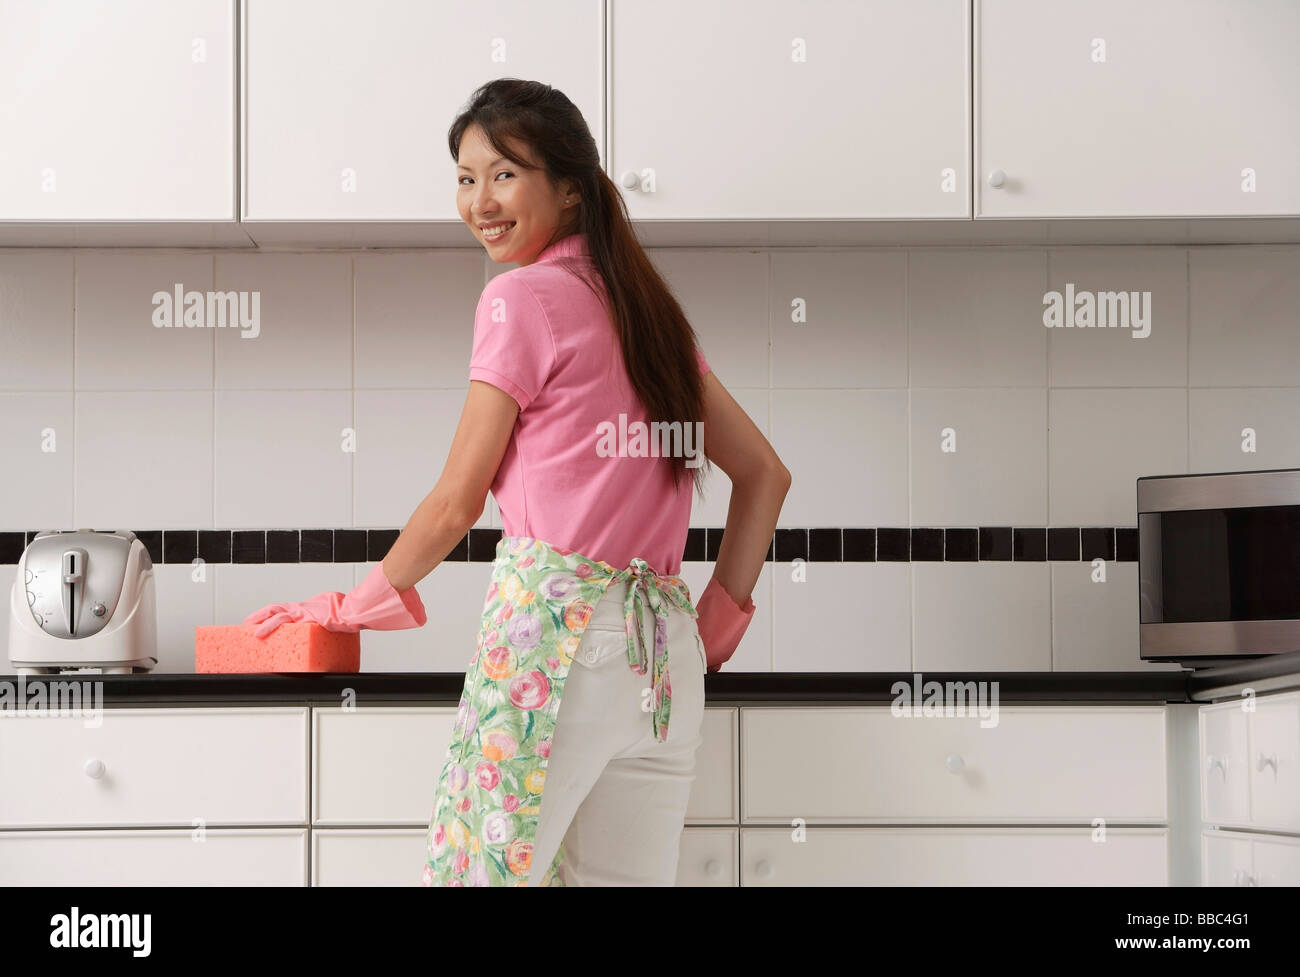 White gloves apron cleaning services - Woman Standing In Kitchen Wearing Gloves And Apron Cleaning Counter With Pink Sponge Looking Over Shoulder